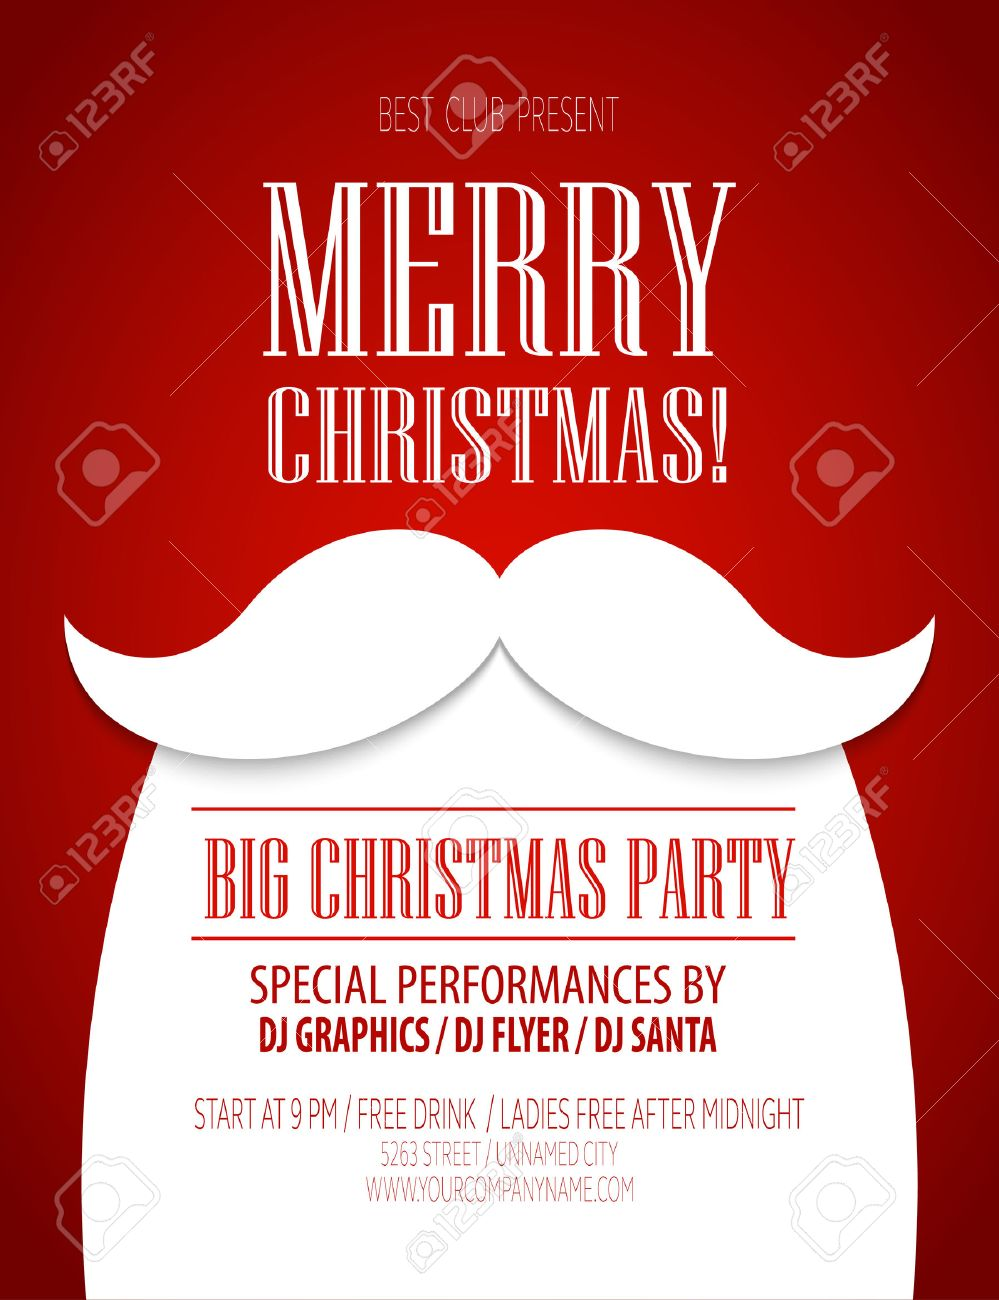 404 620 holiday party stock illustrations cliparts and royalty holiday party christmas party poster